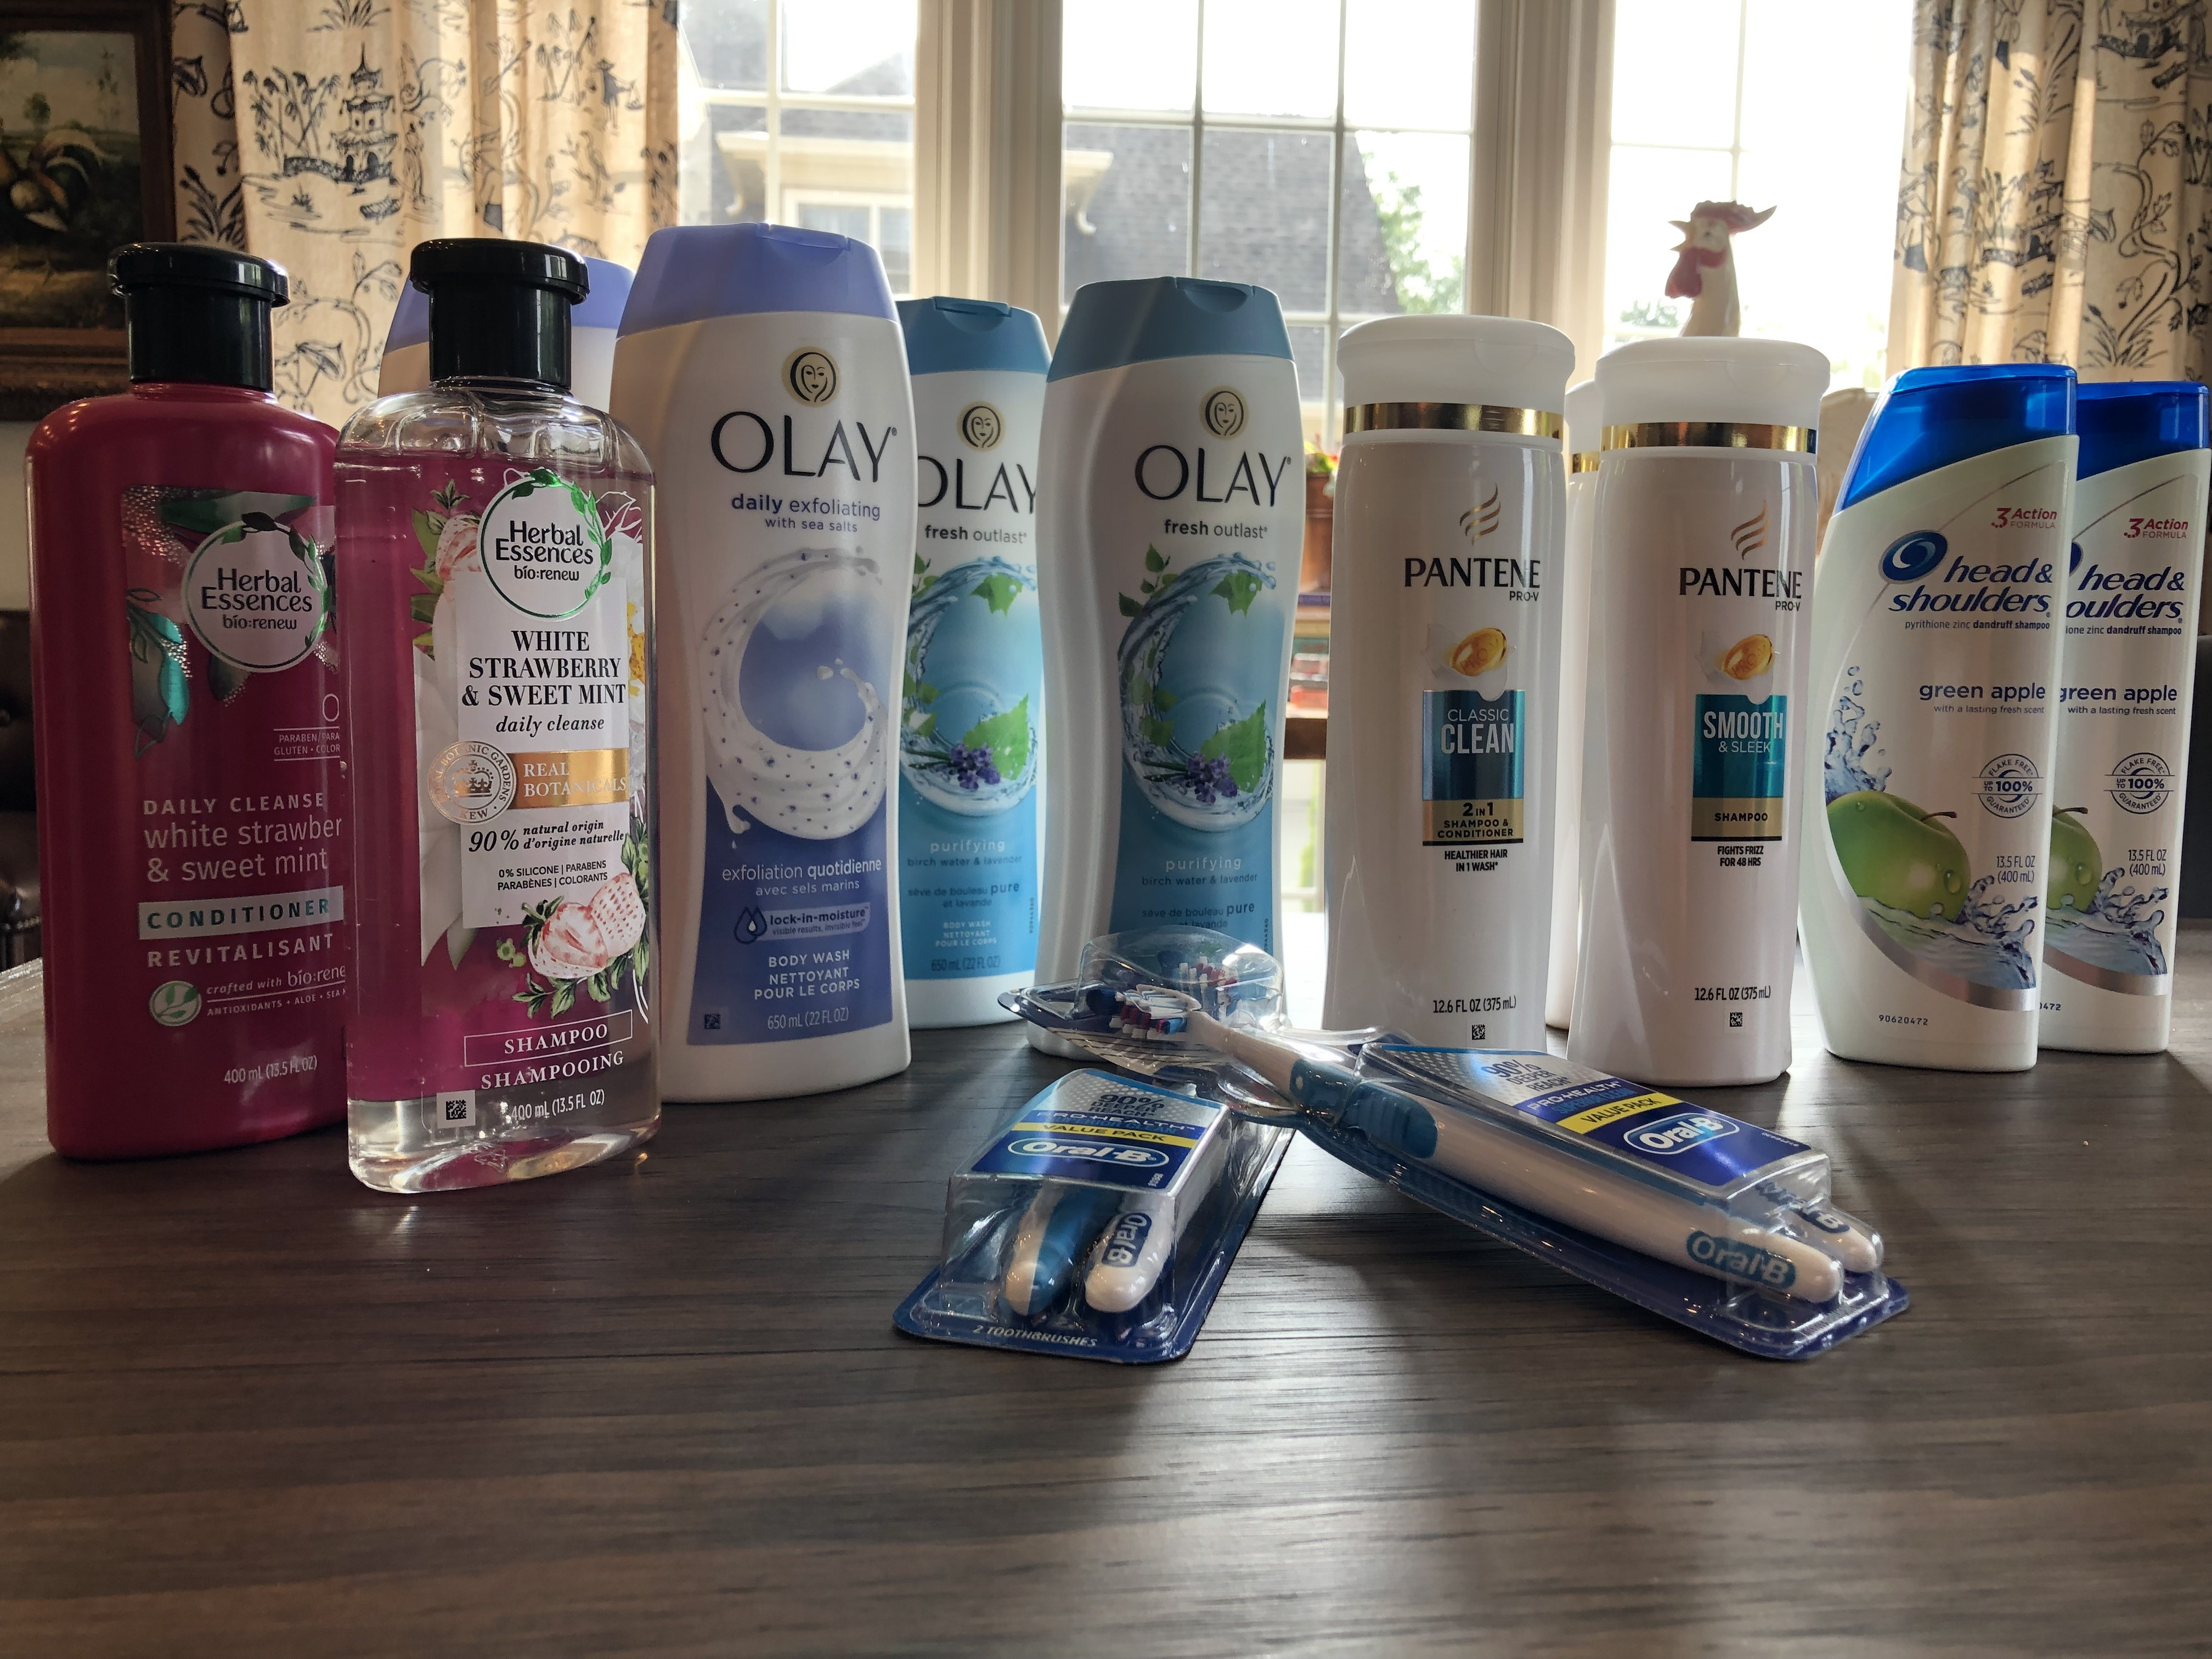 AH-MAZING! Wag's P&G Spring Beauty Rebate – $20 GC on $50 Spend for